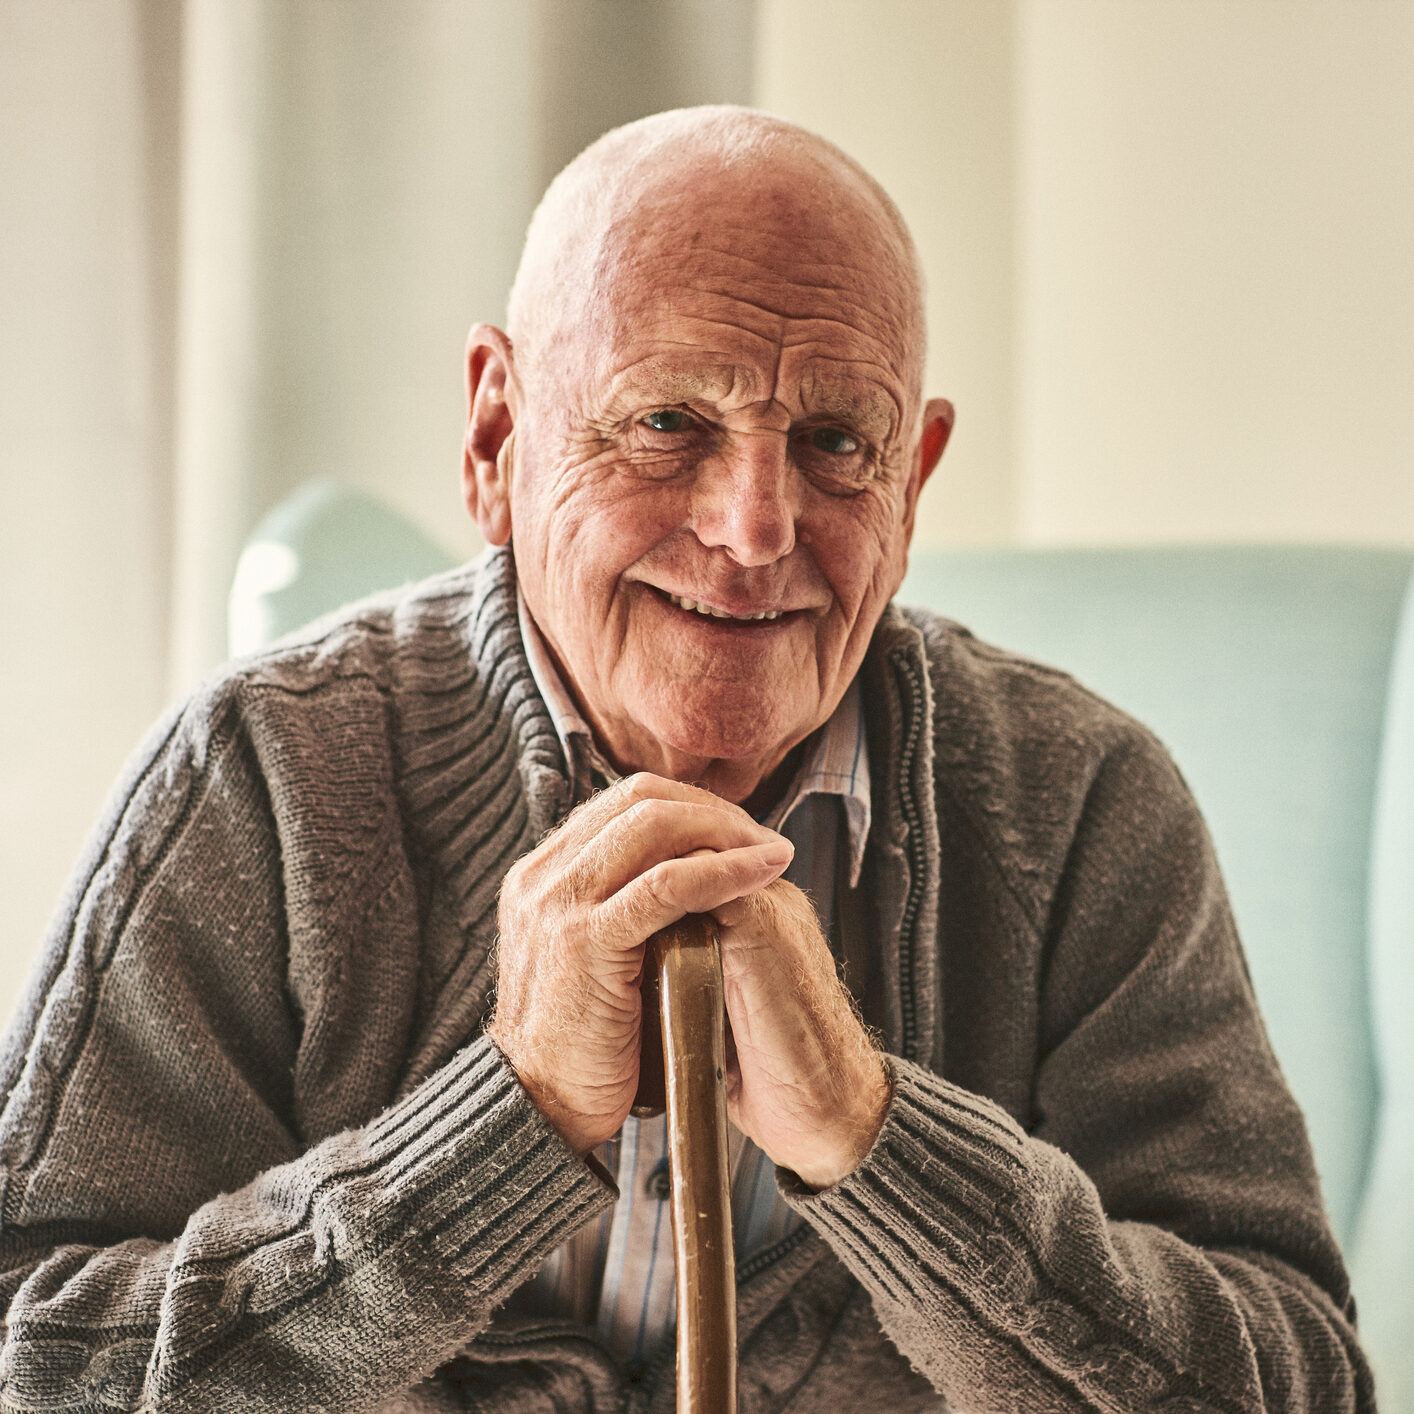 Portrait of happy senior man sitting at home with walking stock and smiling